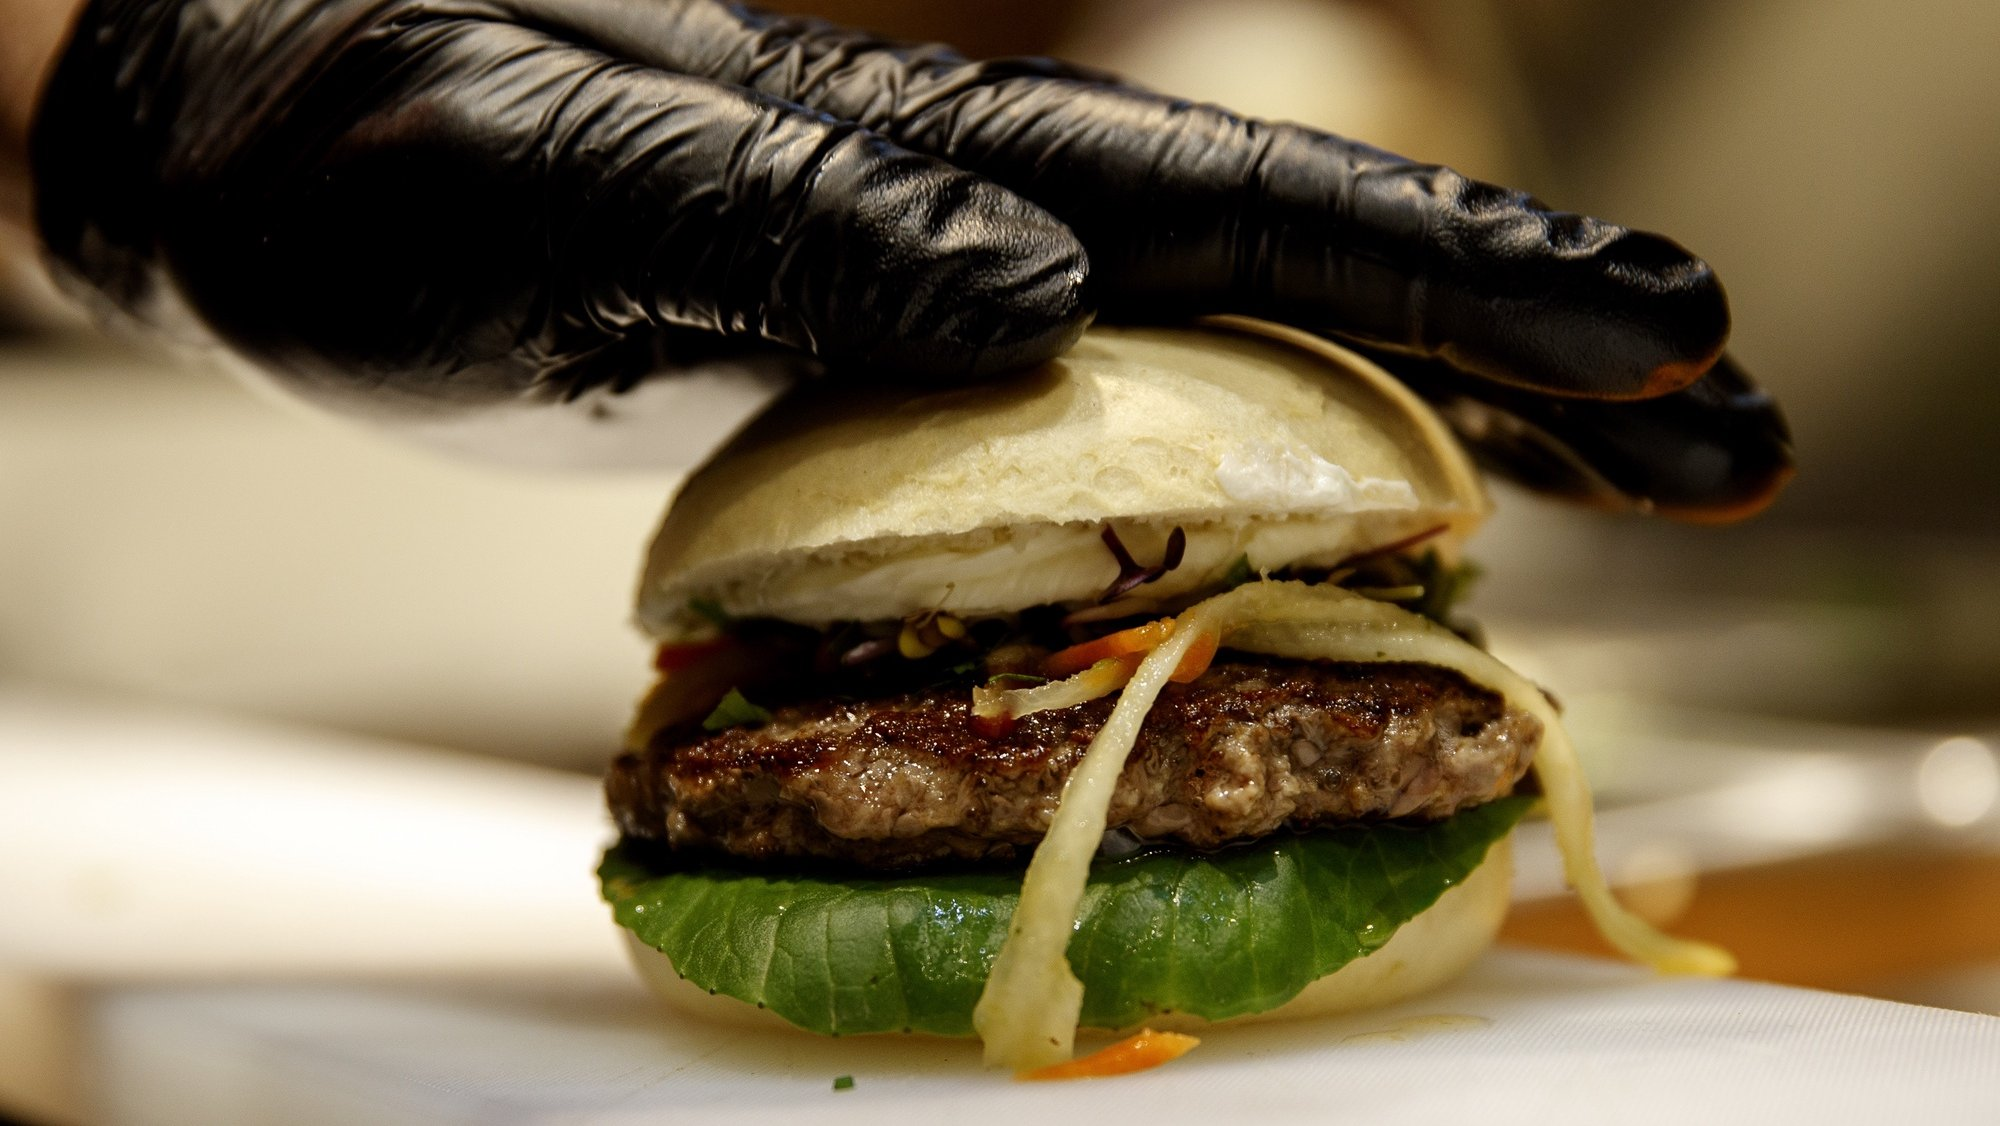 epa08760988 (FILE) - A beef burger at a presentation stand of the company Salomon during the Internorga trade fair in Hamburg, Germany, 21 March 2017 (reissued 21 October 2020). The European Parliament is set to vote on 21 October 2020 on an amendment that could ban the terms sausage and burger for vegan or vegetarian products.  EPA/CARSTEN KOALL *** Local Caption *** 53401708